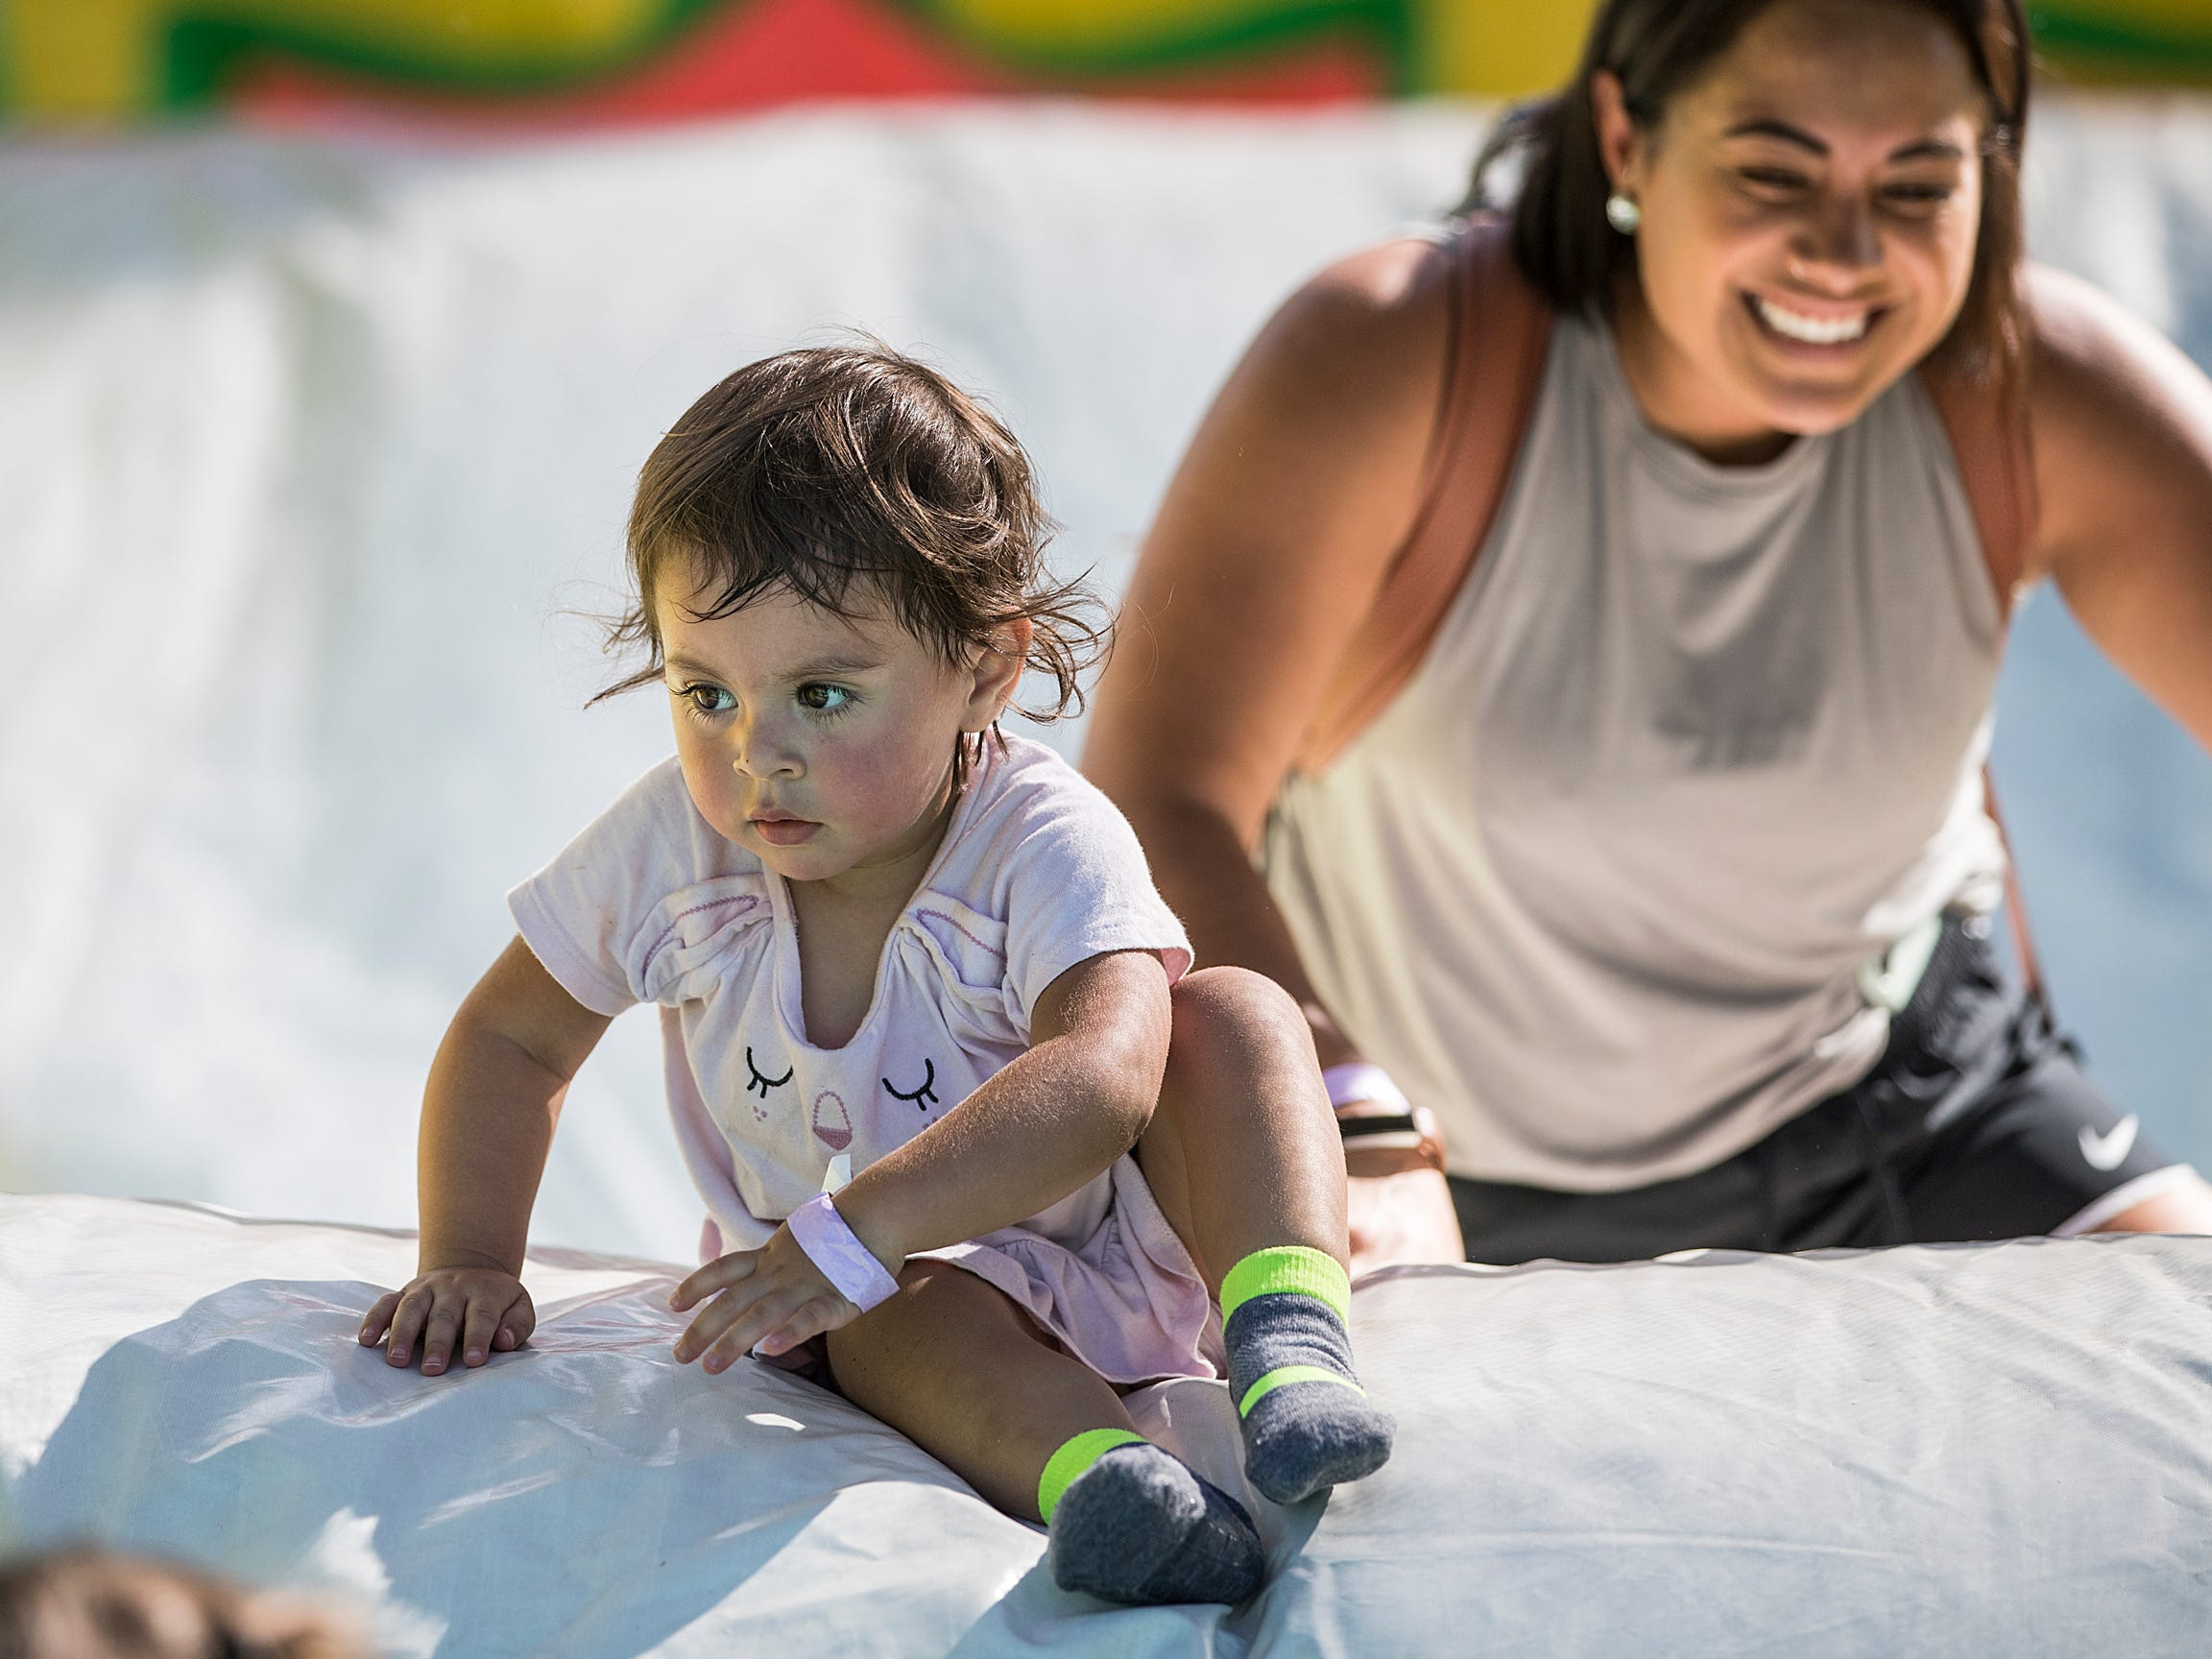 Emma Mercer, 2, climbs over an inflated slide followed by her mother Cynthia Zimla, on the Big Bounce America attraction at Waterman's Family Farm in Indianapolis, Friday, Sept. 14, 2018. The world's largest bounce house covers 10,000 square feet and will be in Indy though September 16.